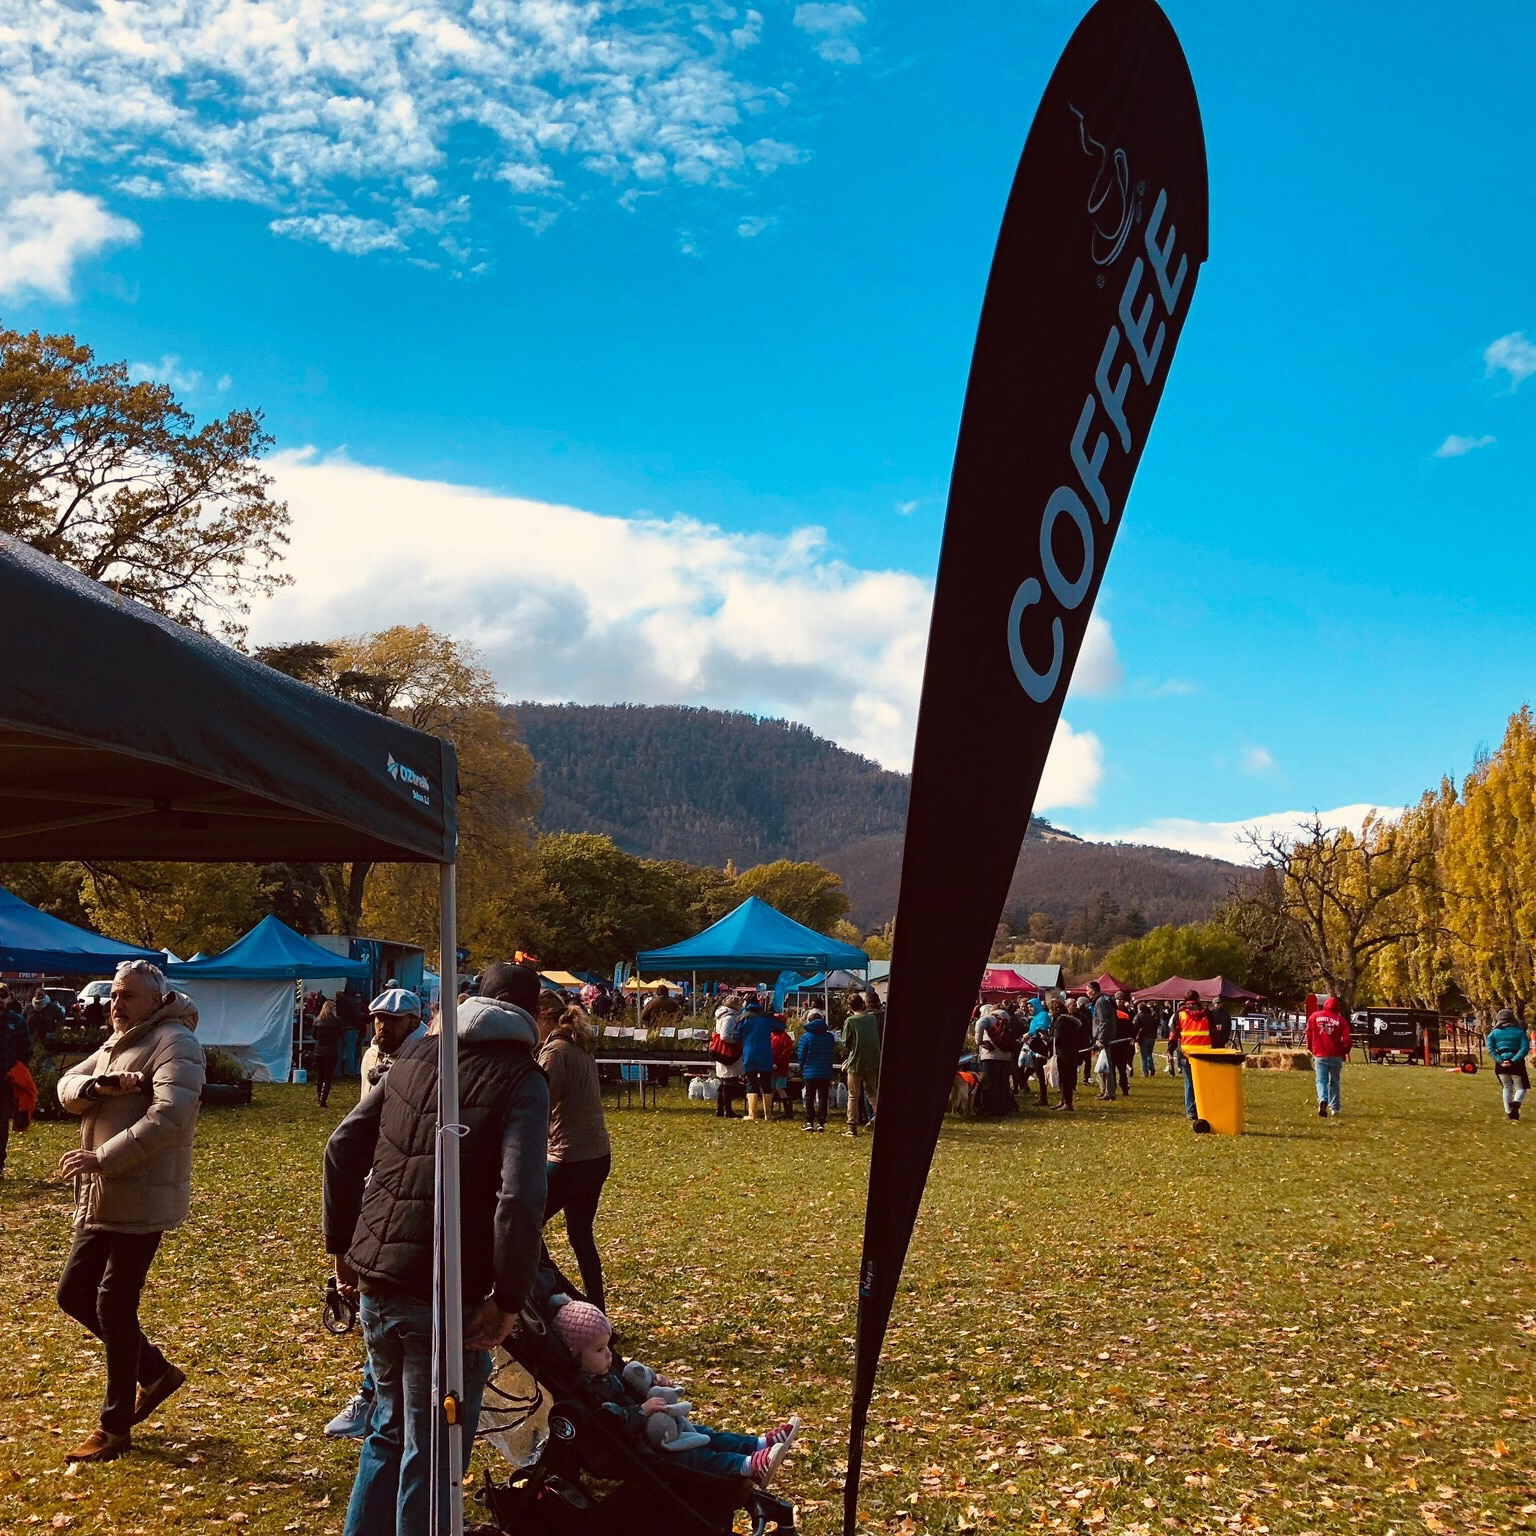 Derwent Valley Autumn Festival